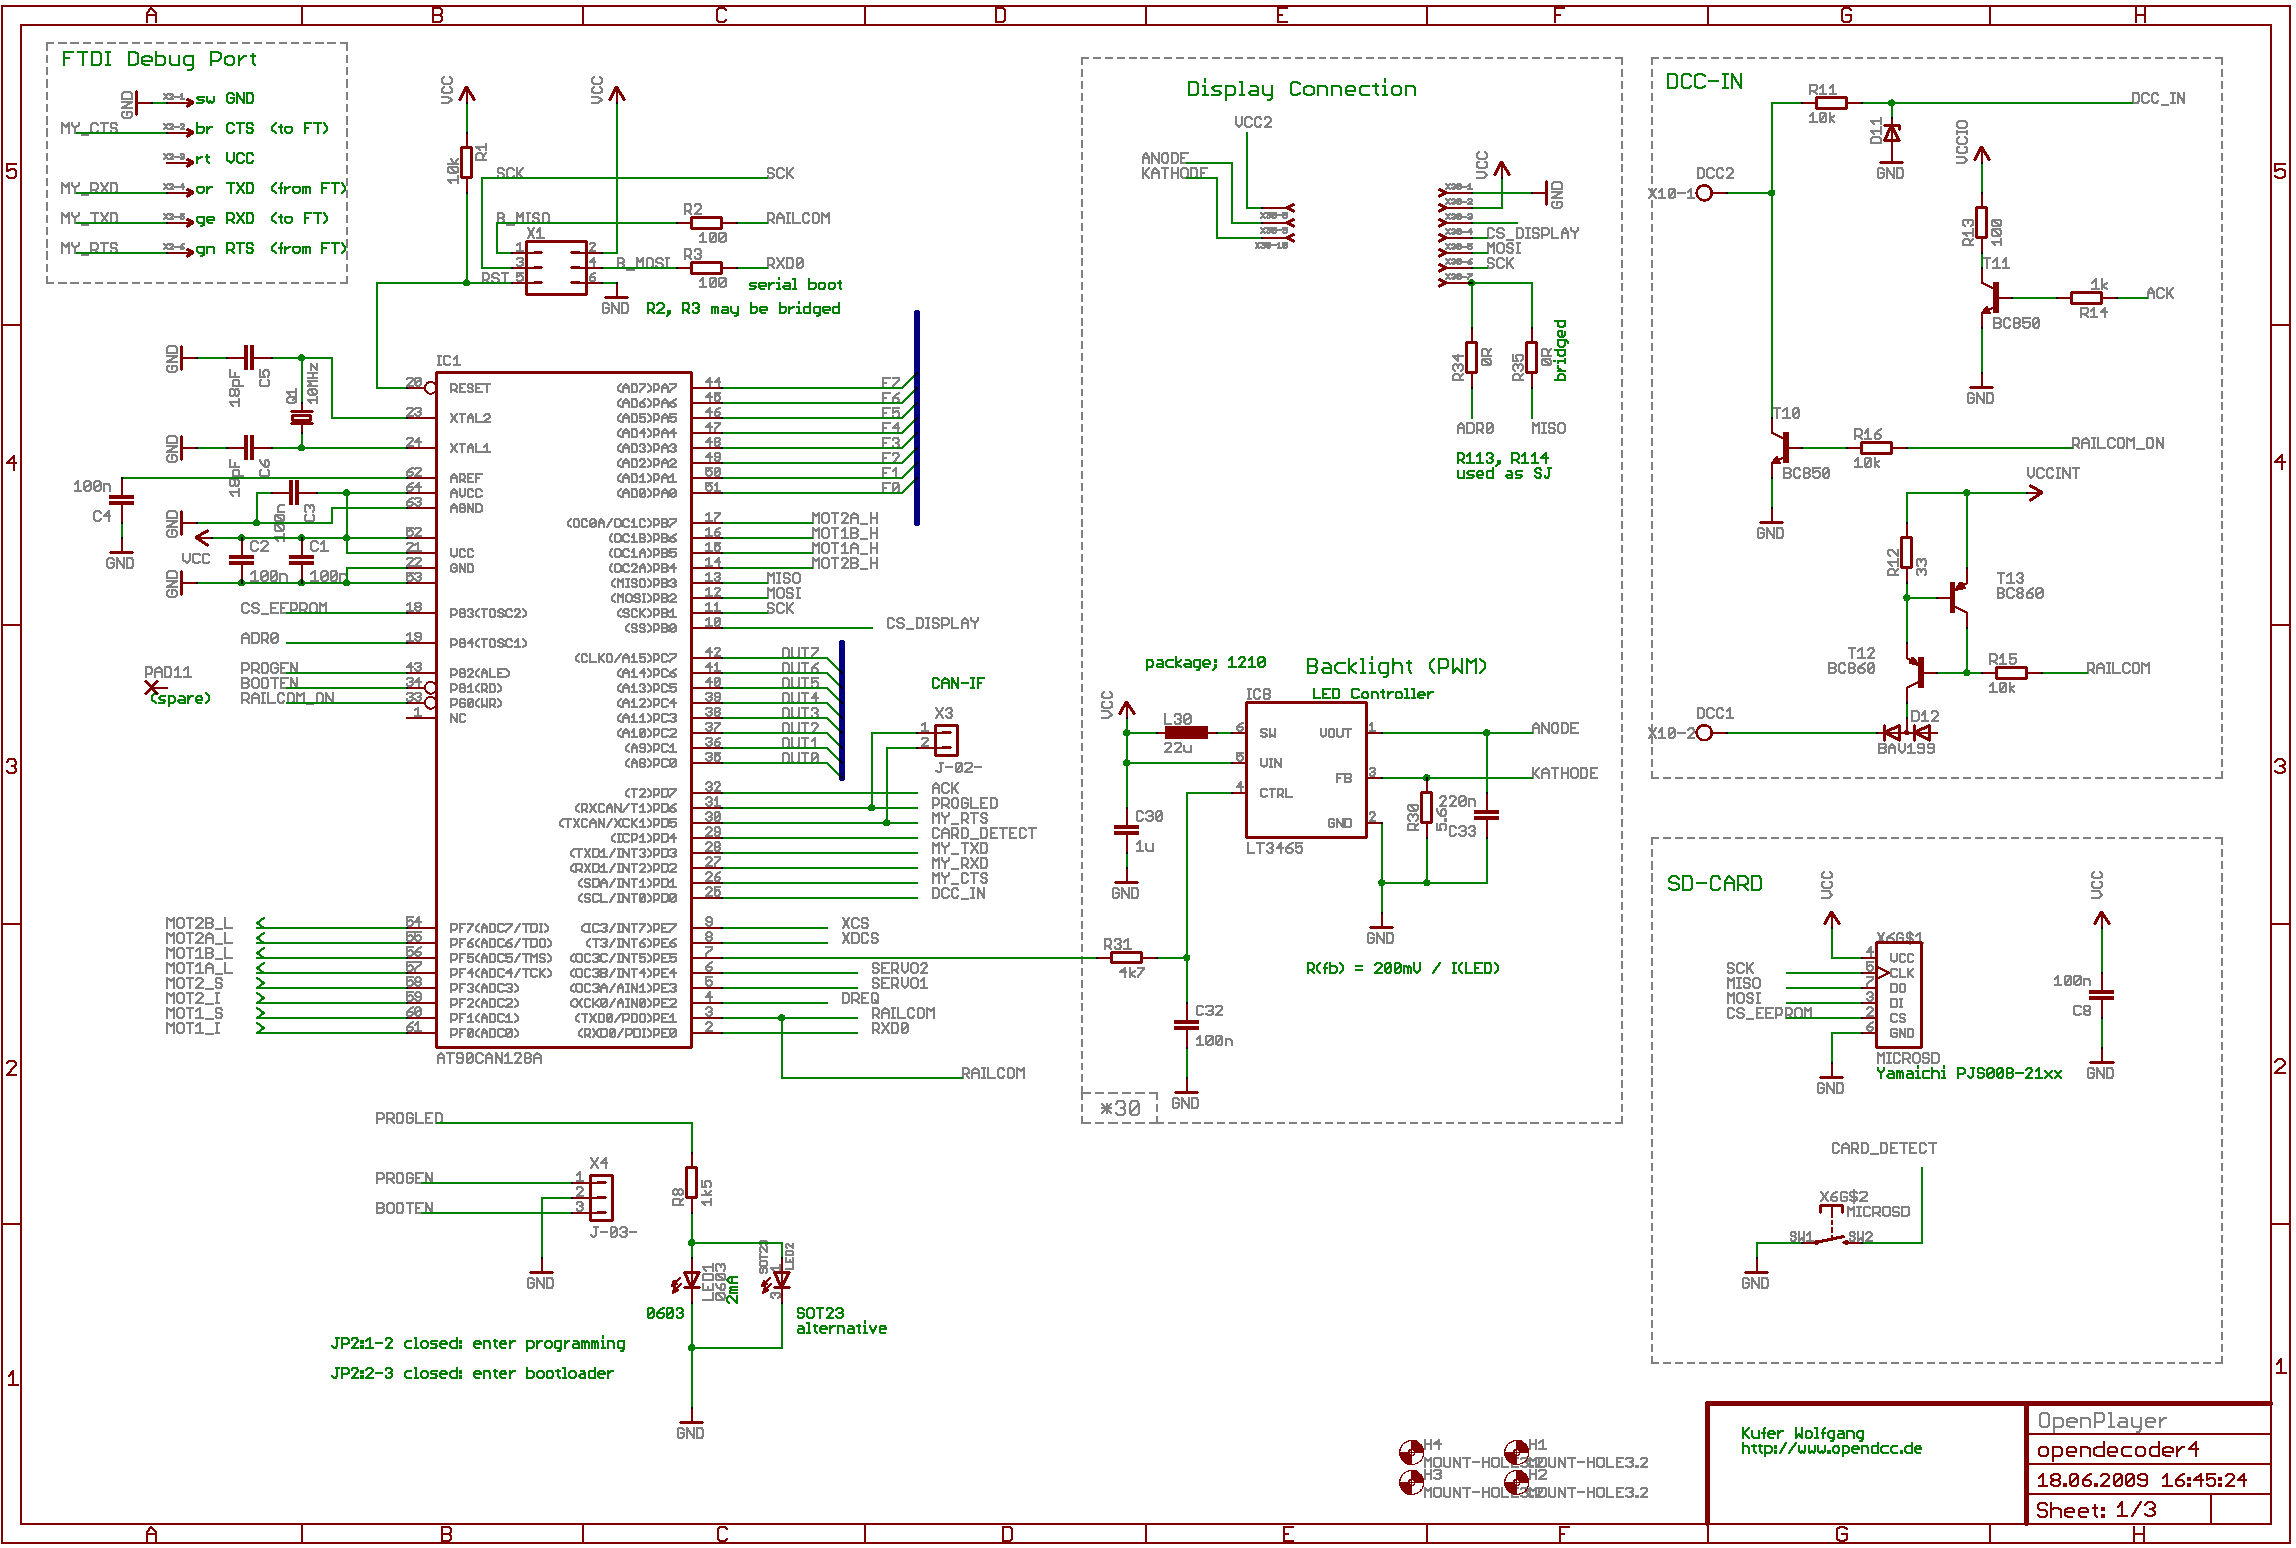 Electronics Schematic Diagram Schematics Symbols Circuits On Electronic Pdf Opendecoder F U00fcr Dcc 1000 Watt Audio